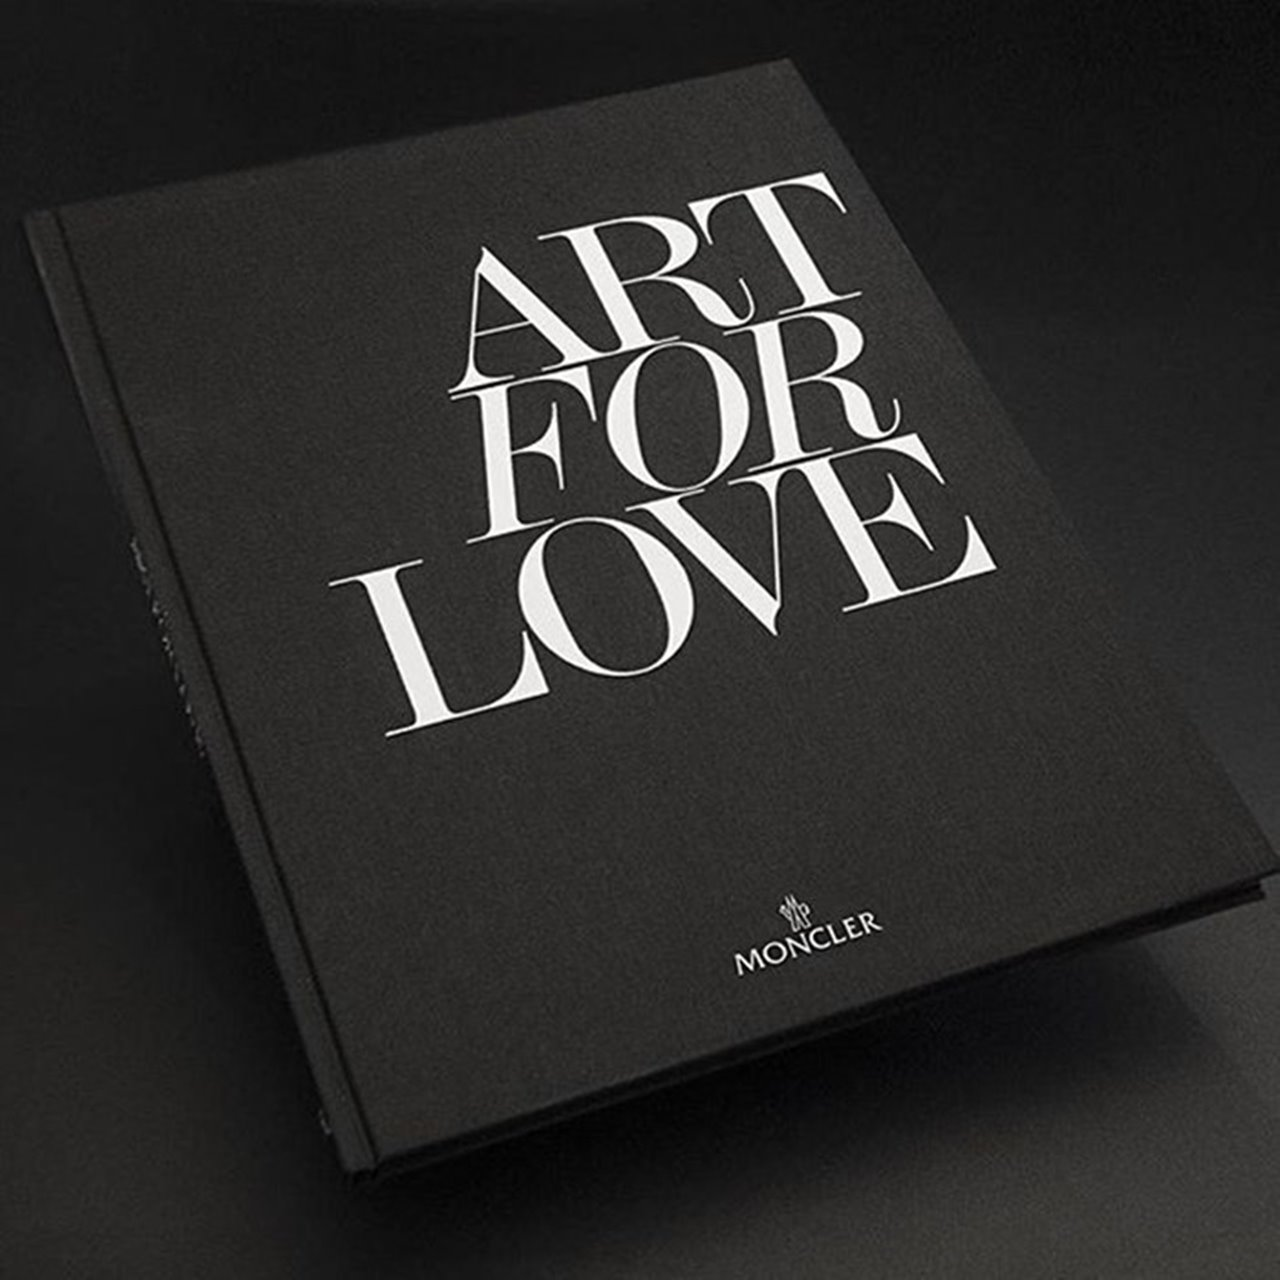 Moncler Art for Love book.jpg